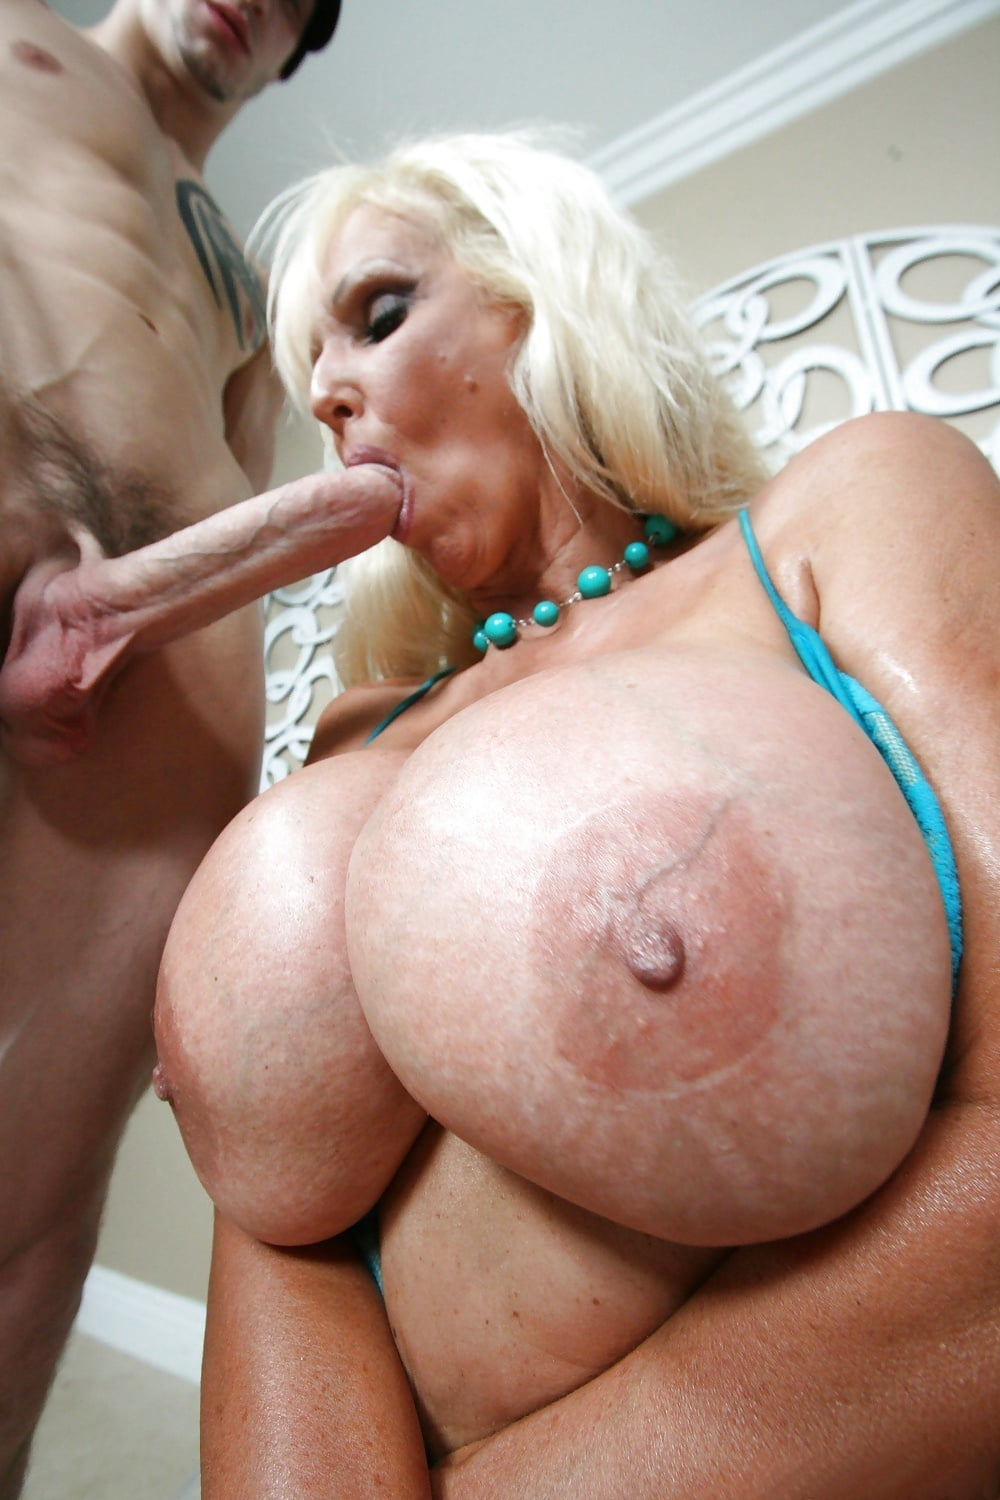 Milf And Mature Woman With Huge Fake Tits Have Interracial Fun, Free Porn